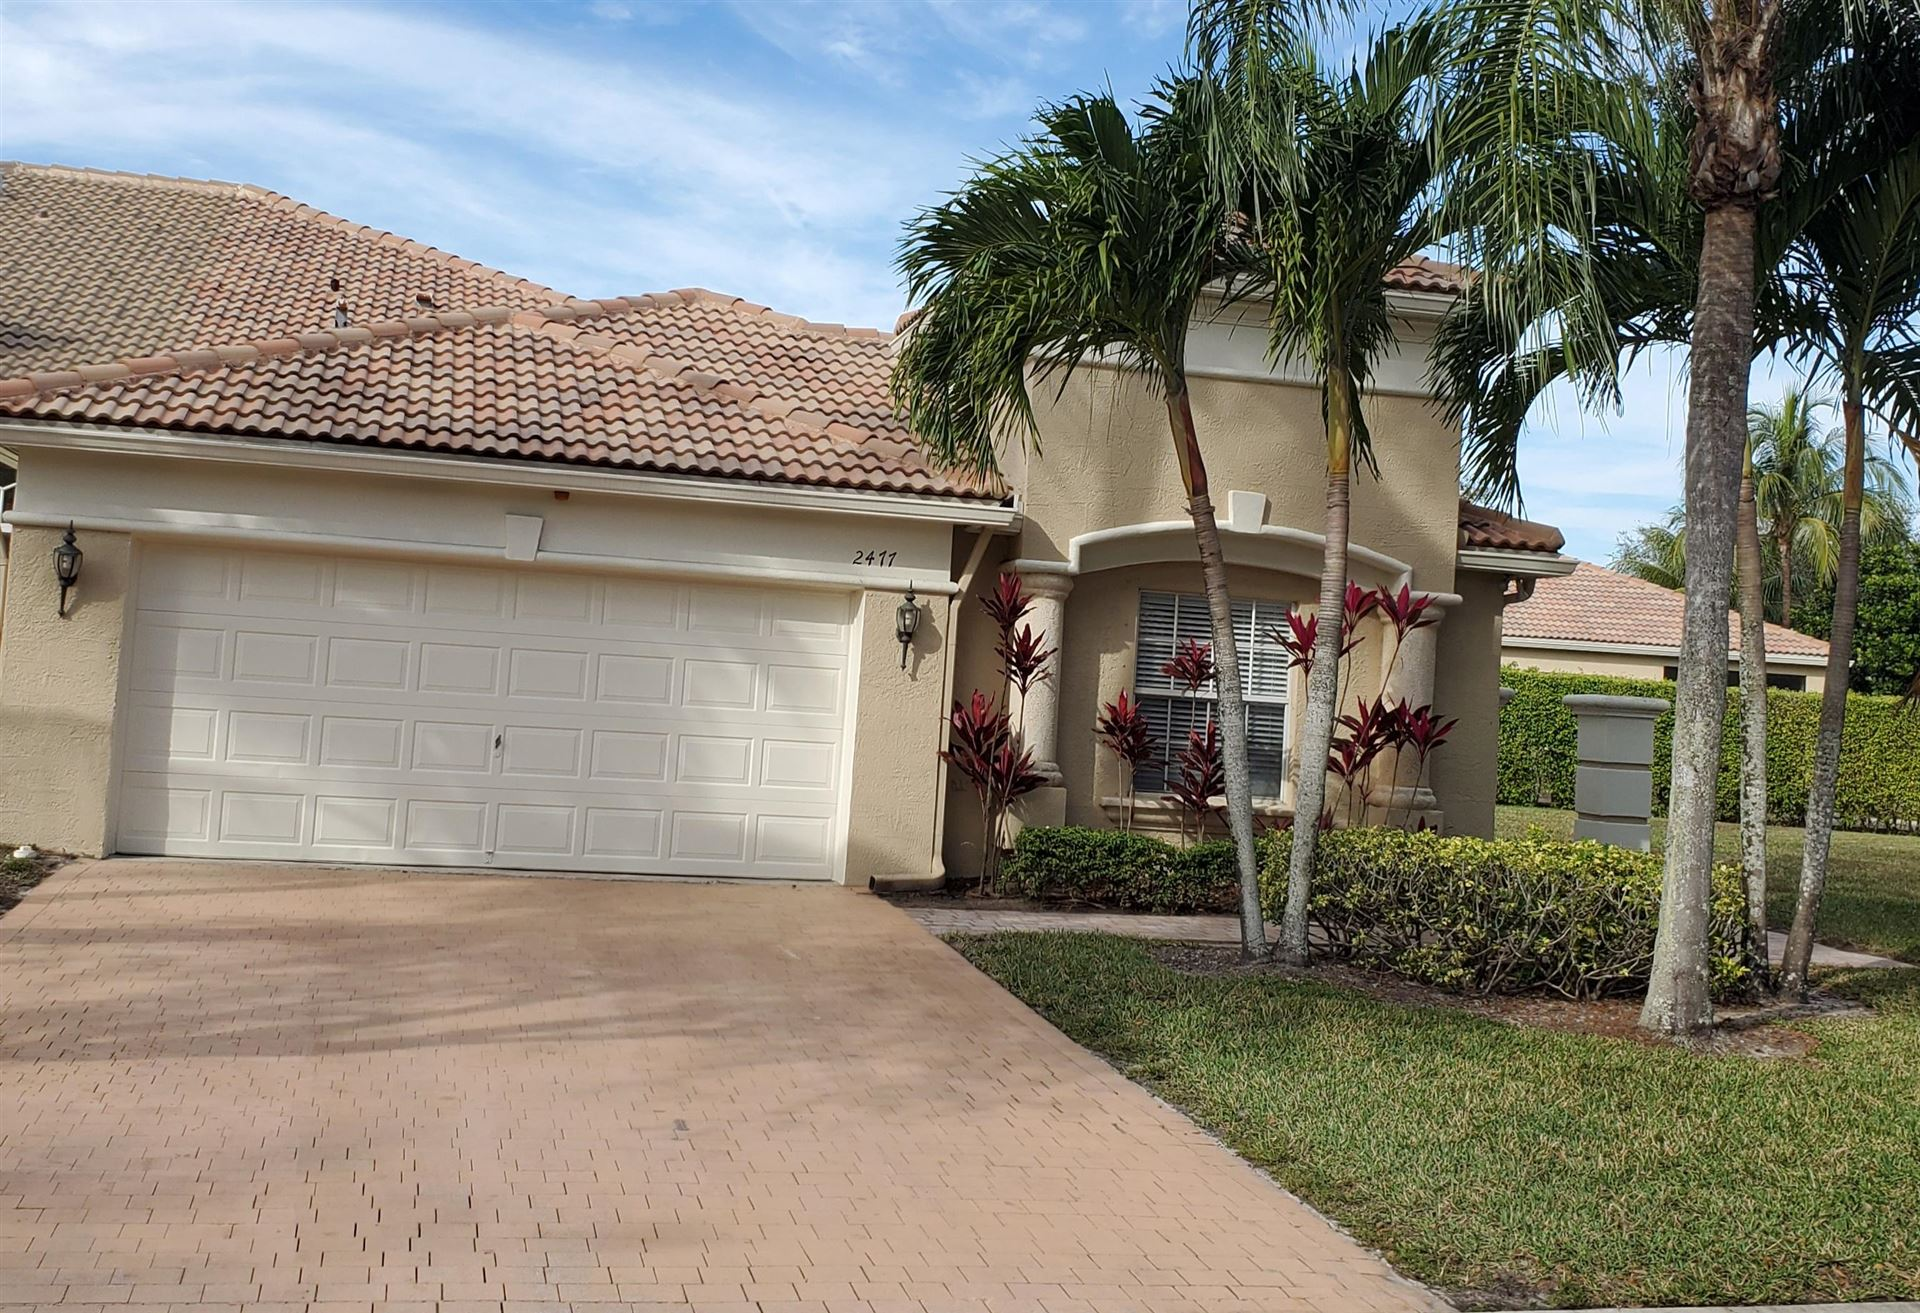 2477 Sandy Cay, West Palm Beach, FL 33411 - #: RX-10688077